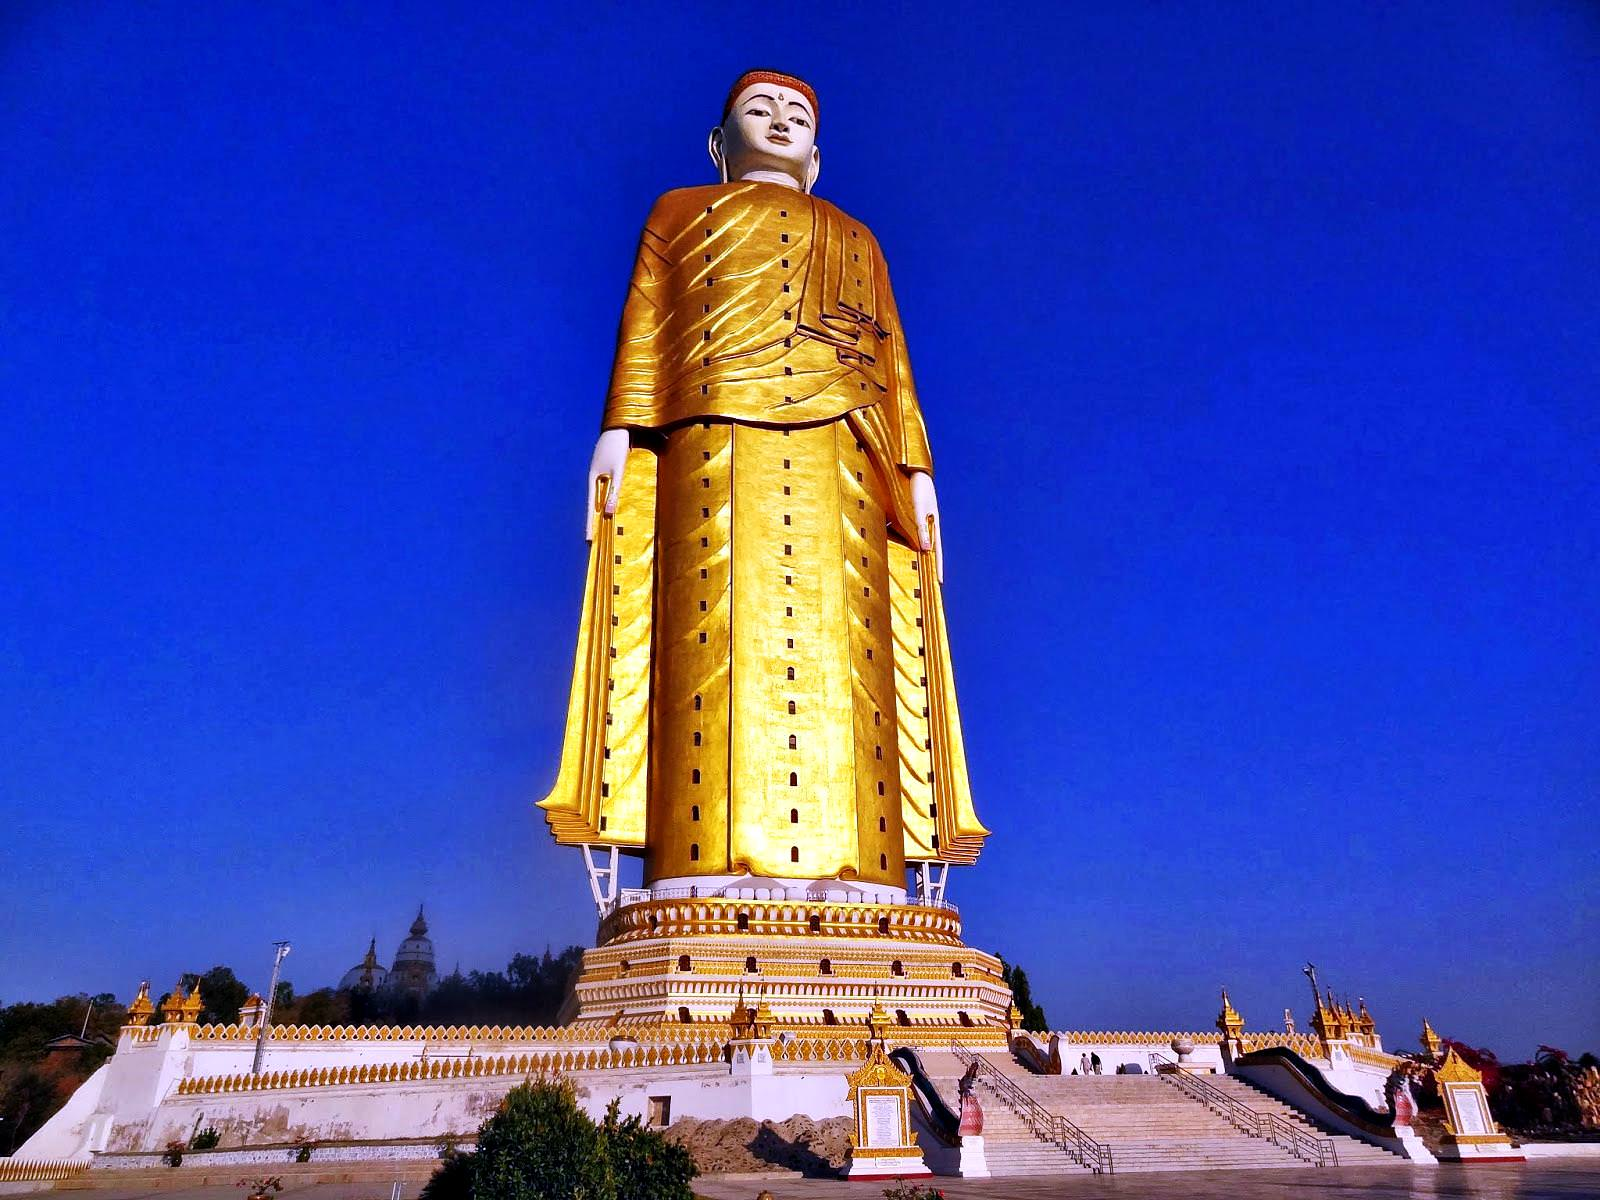 Laykyun Setkyar | Series 'The most grandiose statues and monuments'